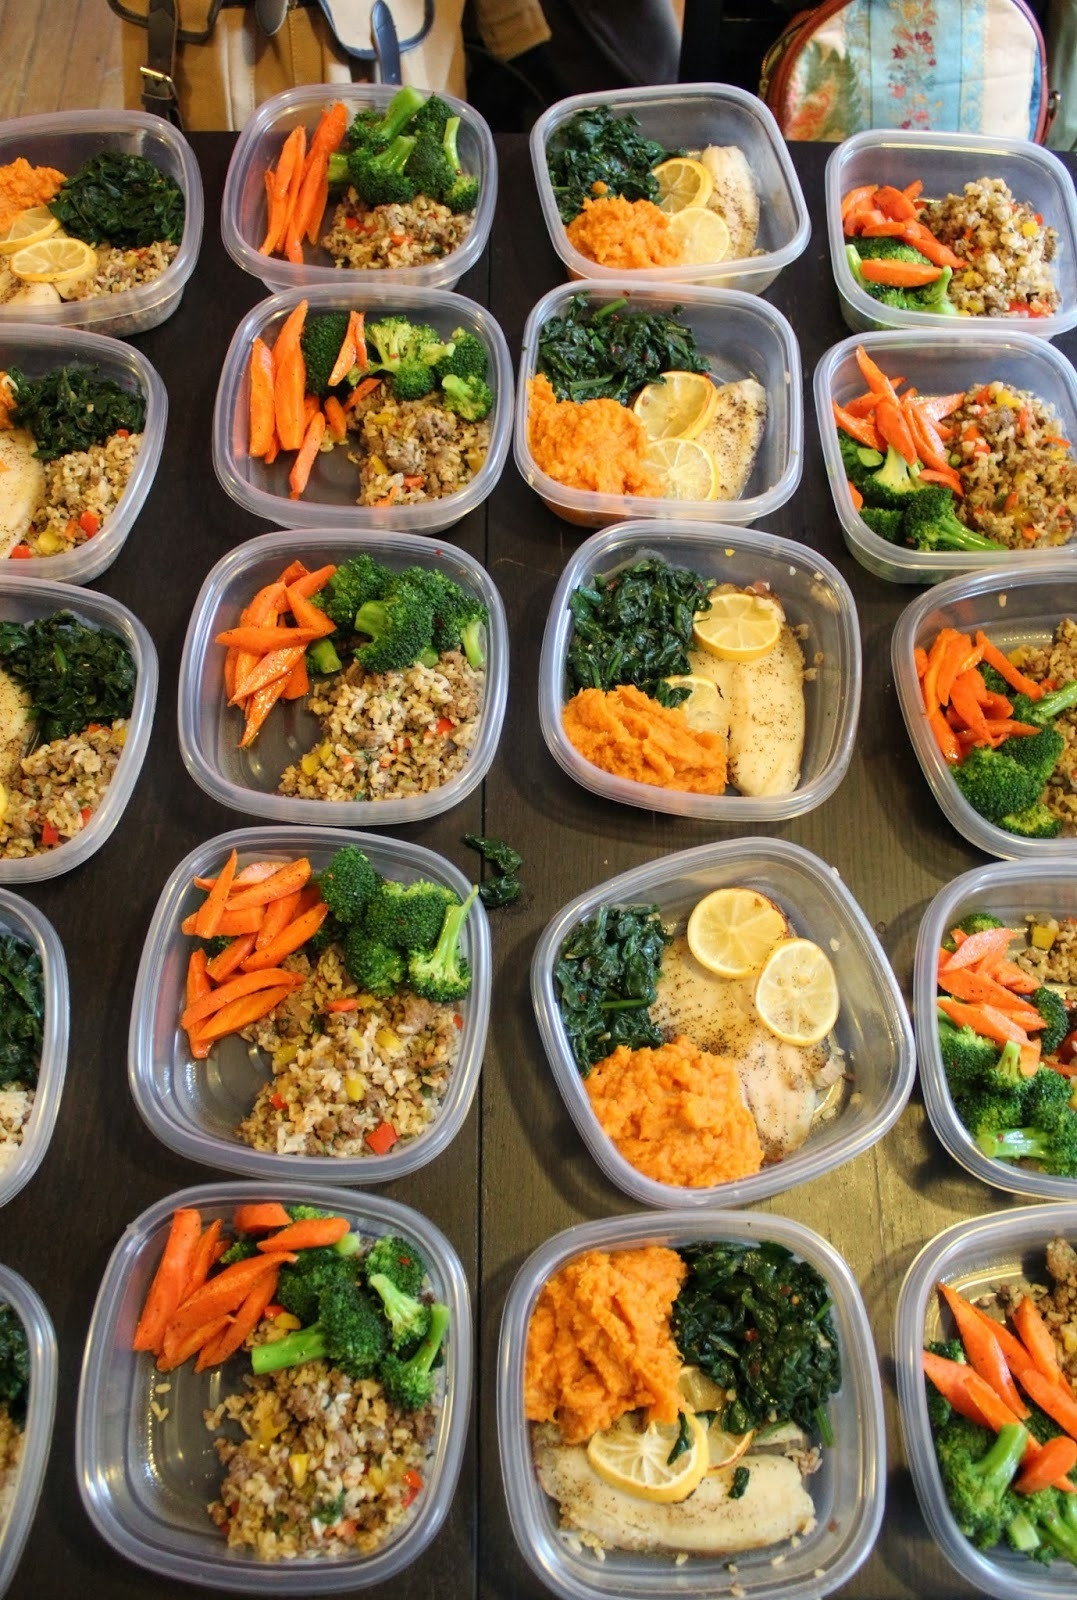 Easy Healthy Dinner Recipes  Healthy Meal Prep Ideas For The WeekWritings and Papers